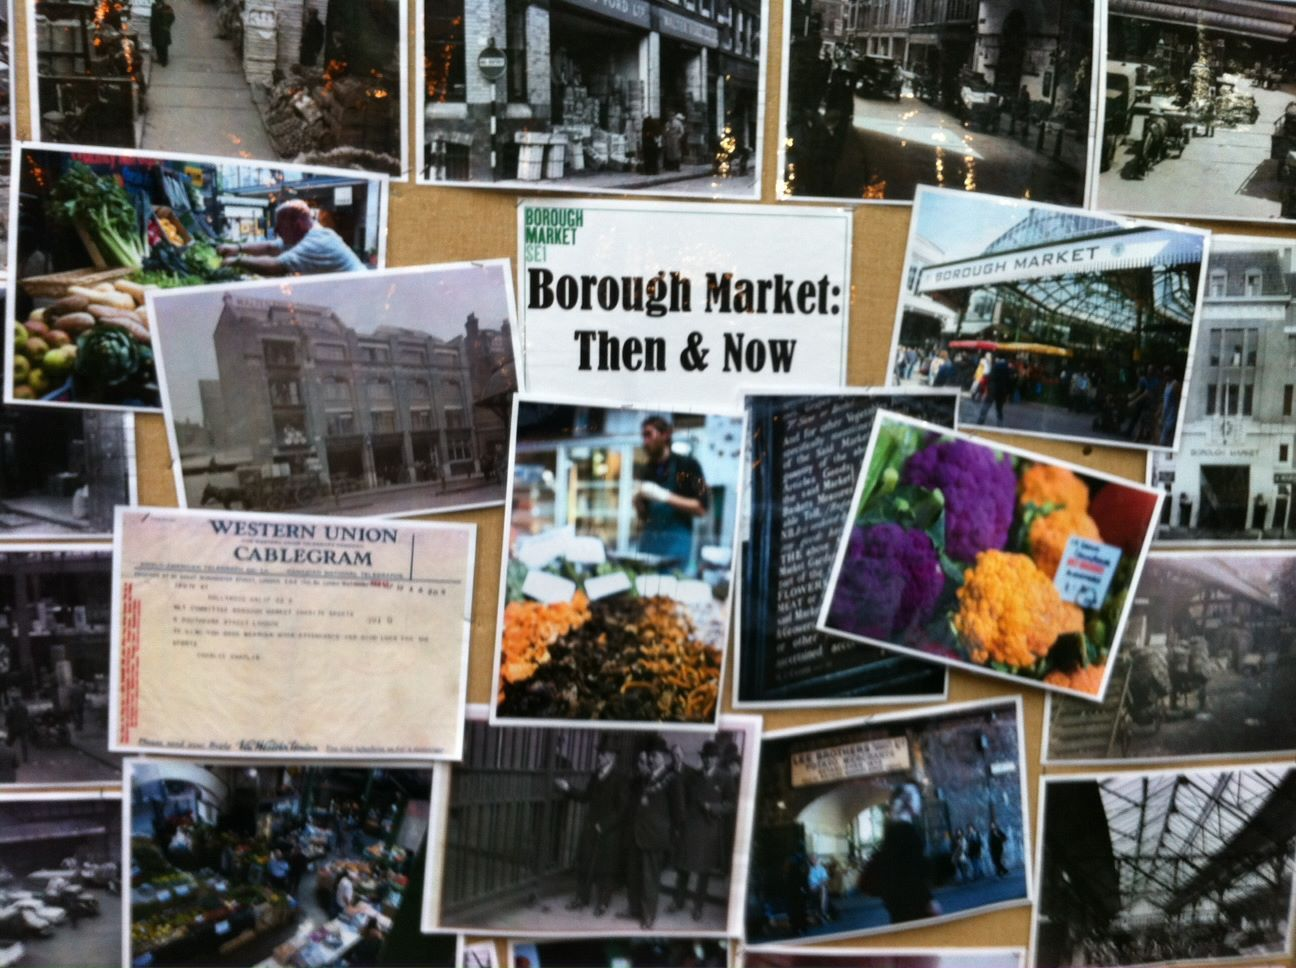 A collection of photos on display in the Market showing Borough Market: then and now.